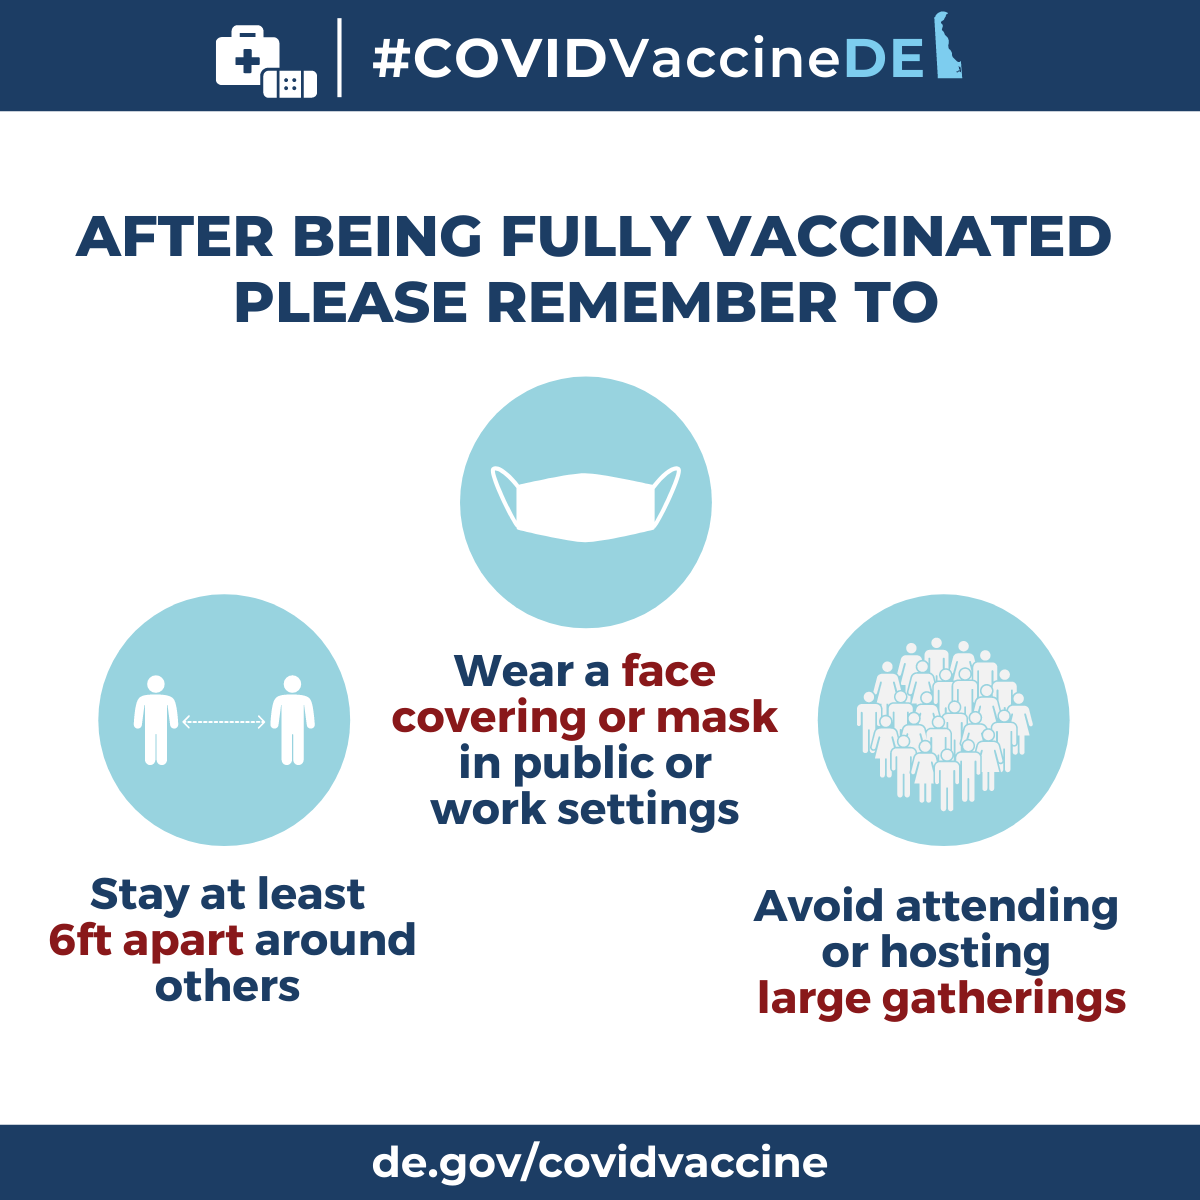 After being fully vaccinated please remember to stay at least 6ft apart around others, wear a face covering or mask in public or work settings, avoid attending or hosting large gatherings.